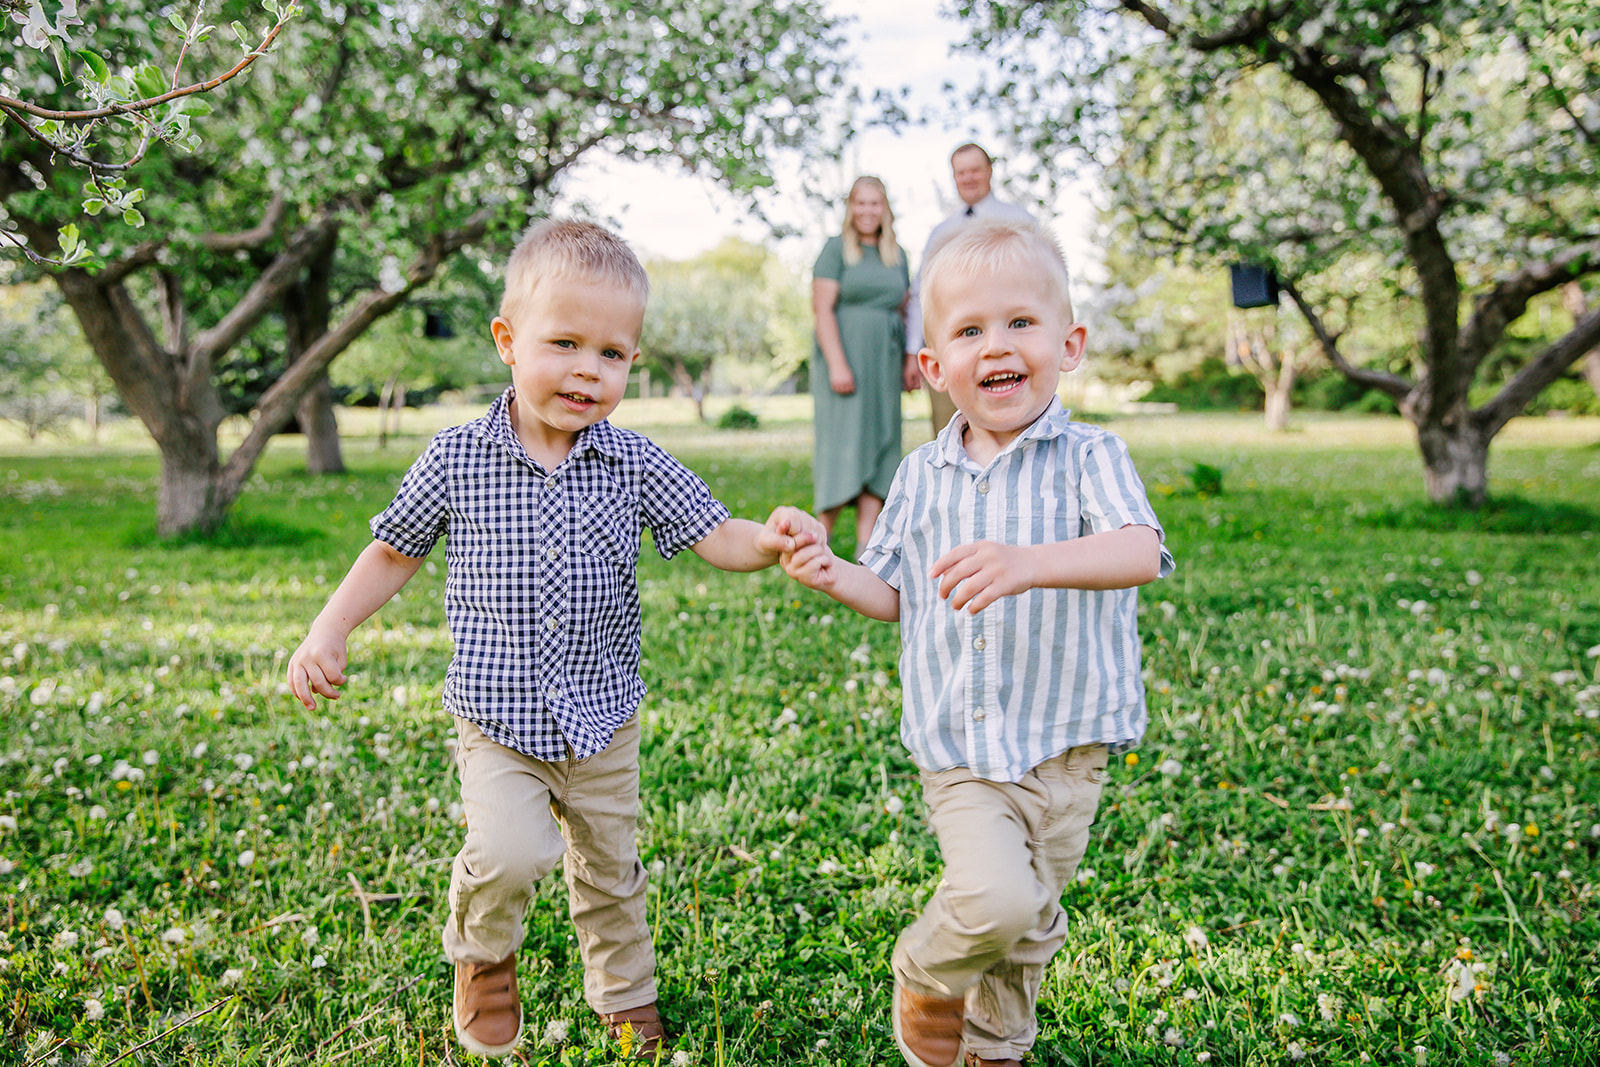 Happy boys in field of flowers. Summer time photos. Laughing boy sin green fields Family photos. Ranch style photography. Apple Orchard photography. Professional family photos. Twin parents. Trees blossoming. Tree blossoming photos. Twin boys run through a field of flowers. #twinboy #appleorchardphotography #summertimephotos #familyphtos #blossomphotos #lookingintoeachotherseyes #happyfamily #formalpictures #greenfieldphotos #hotsummernights #laughingboy #twinparents